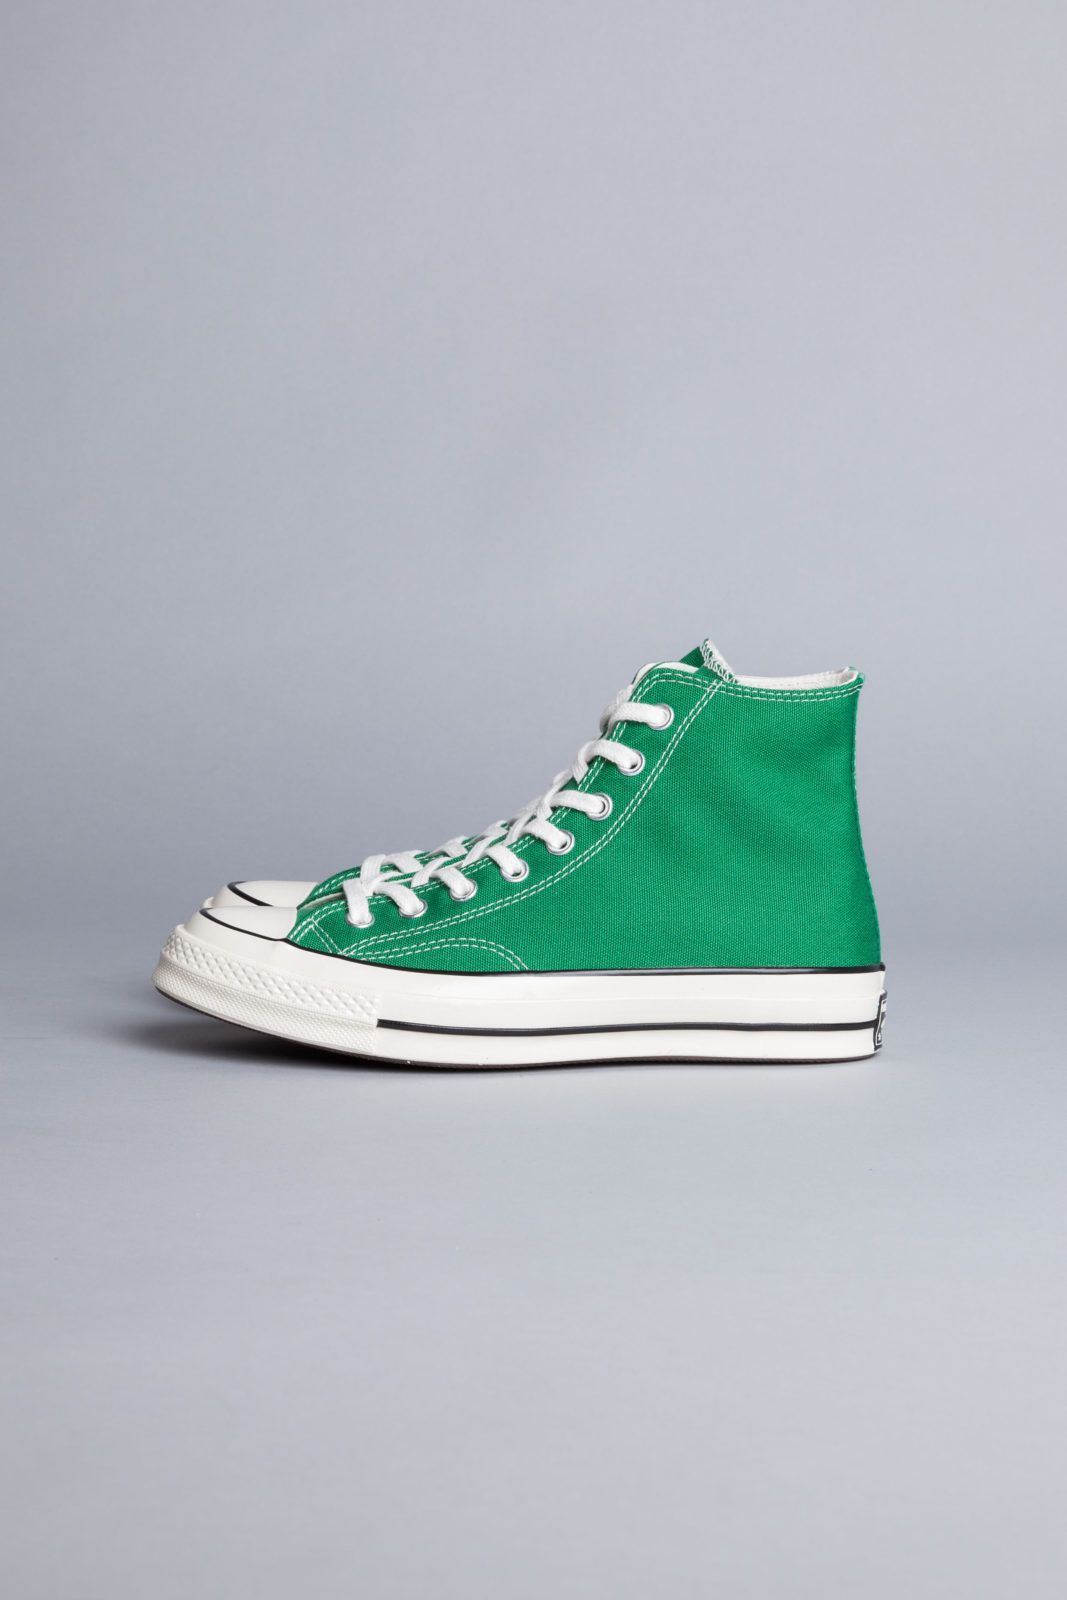 087ba3705b74 Converse Chuck Taylor 70 Green is a re-crafted sneaker that use modern  details to celebrate the original Chuck Taylor from 1970s.